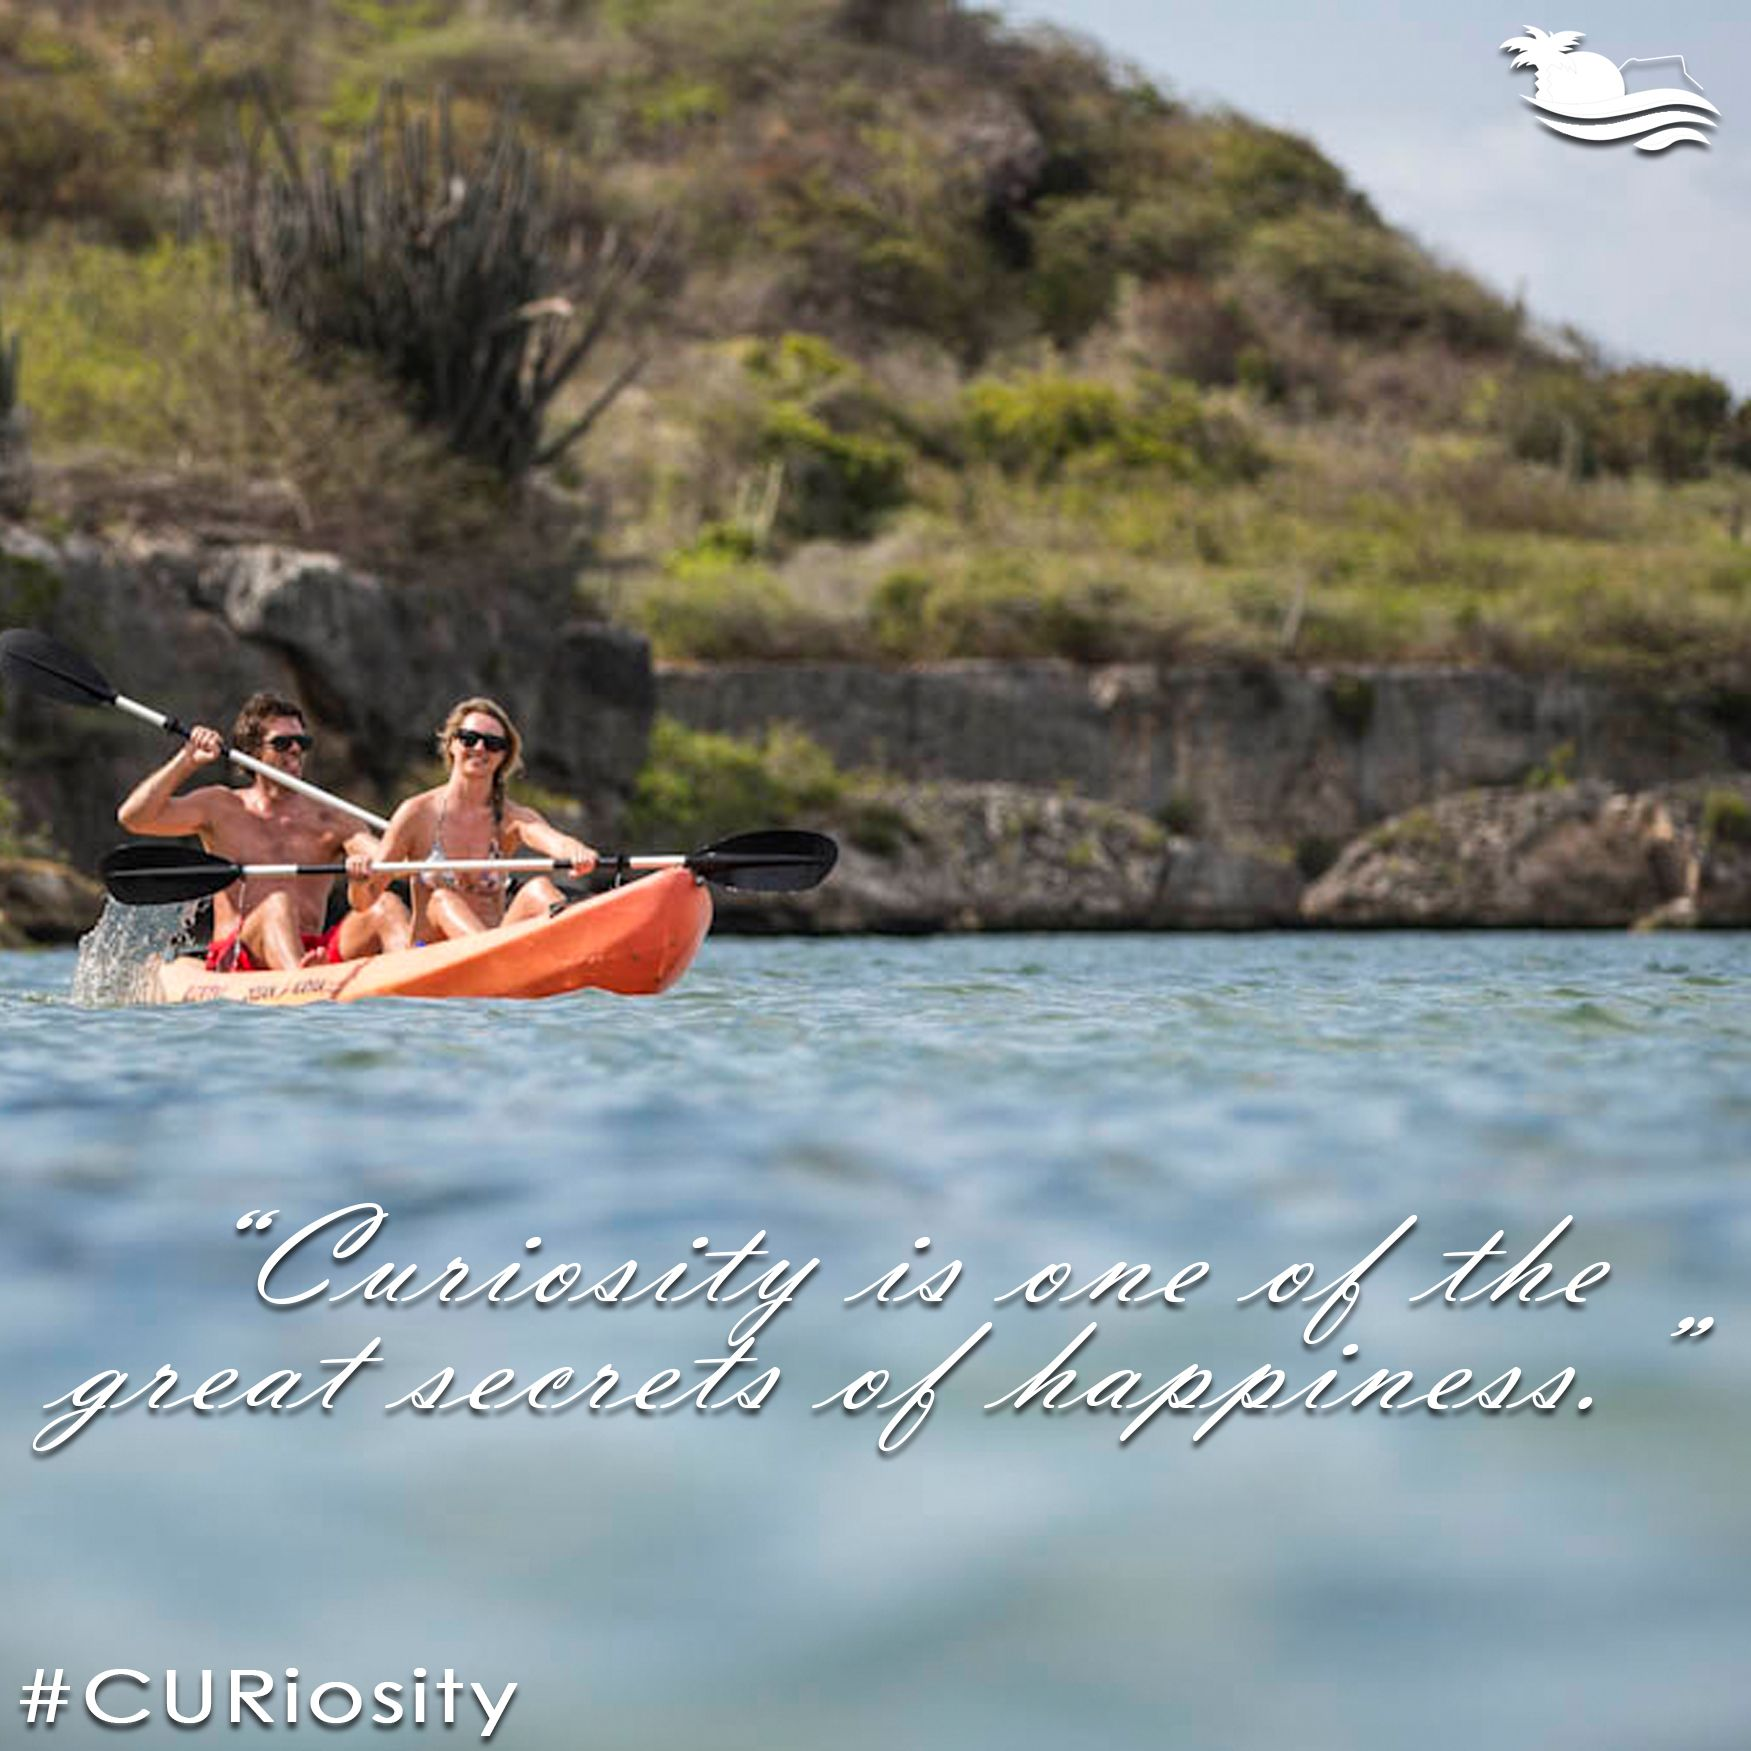 """Curiosity Quotes Curiosity Is One Of The Great Secrets Of Happiness."""" Travel"""